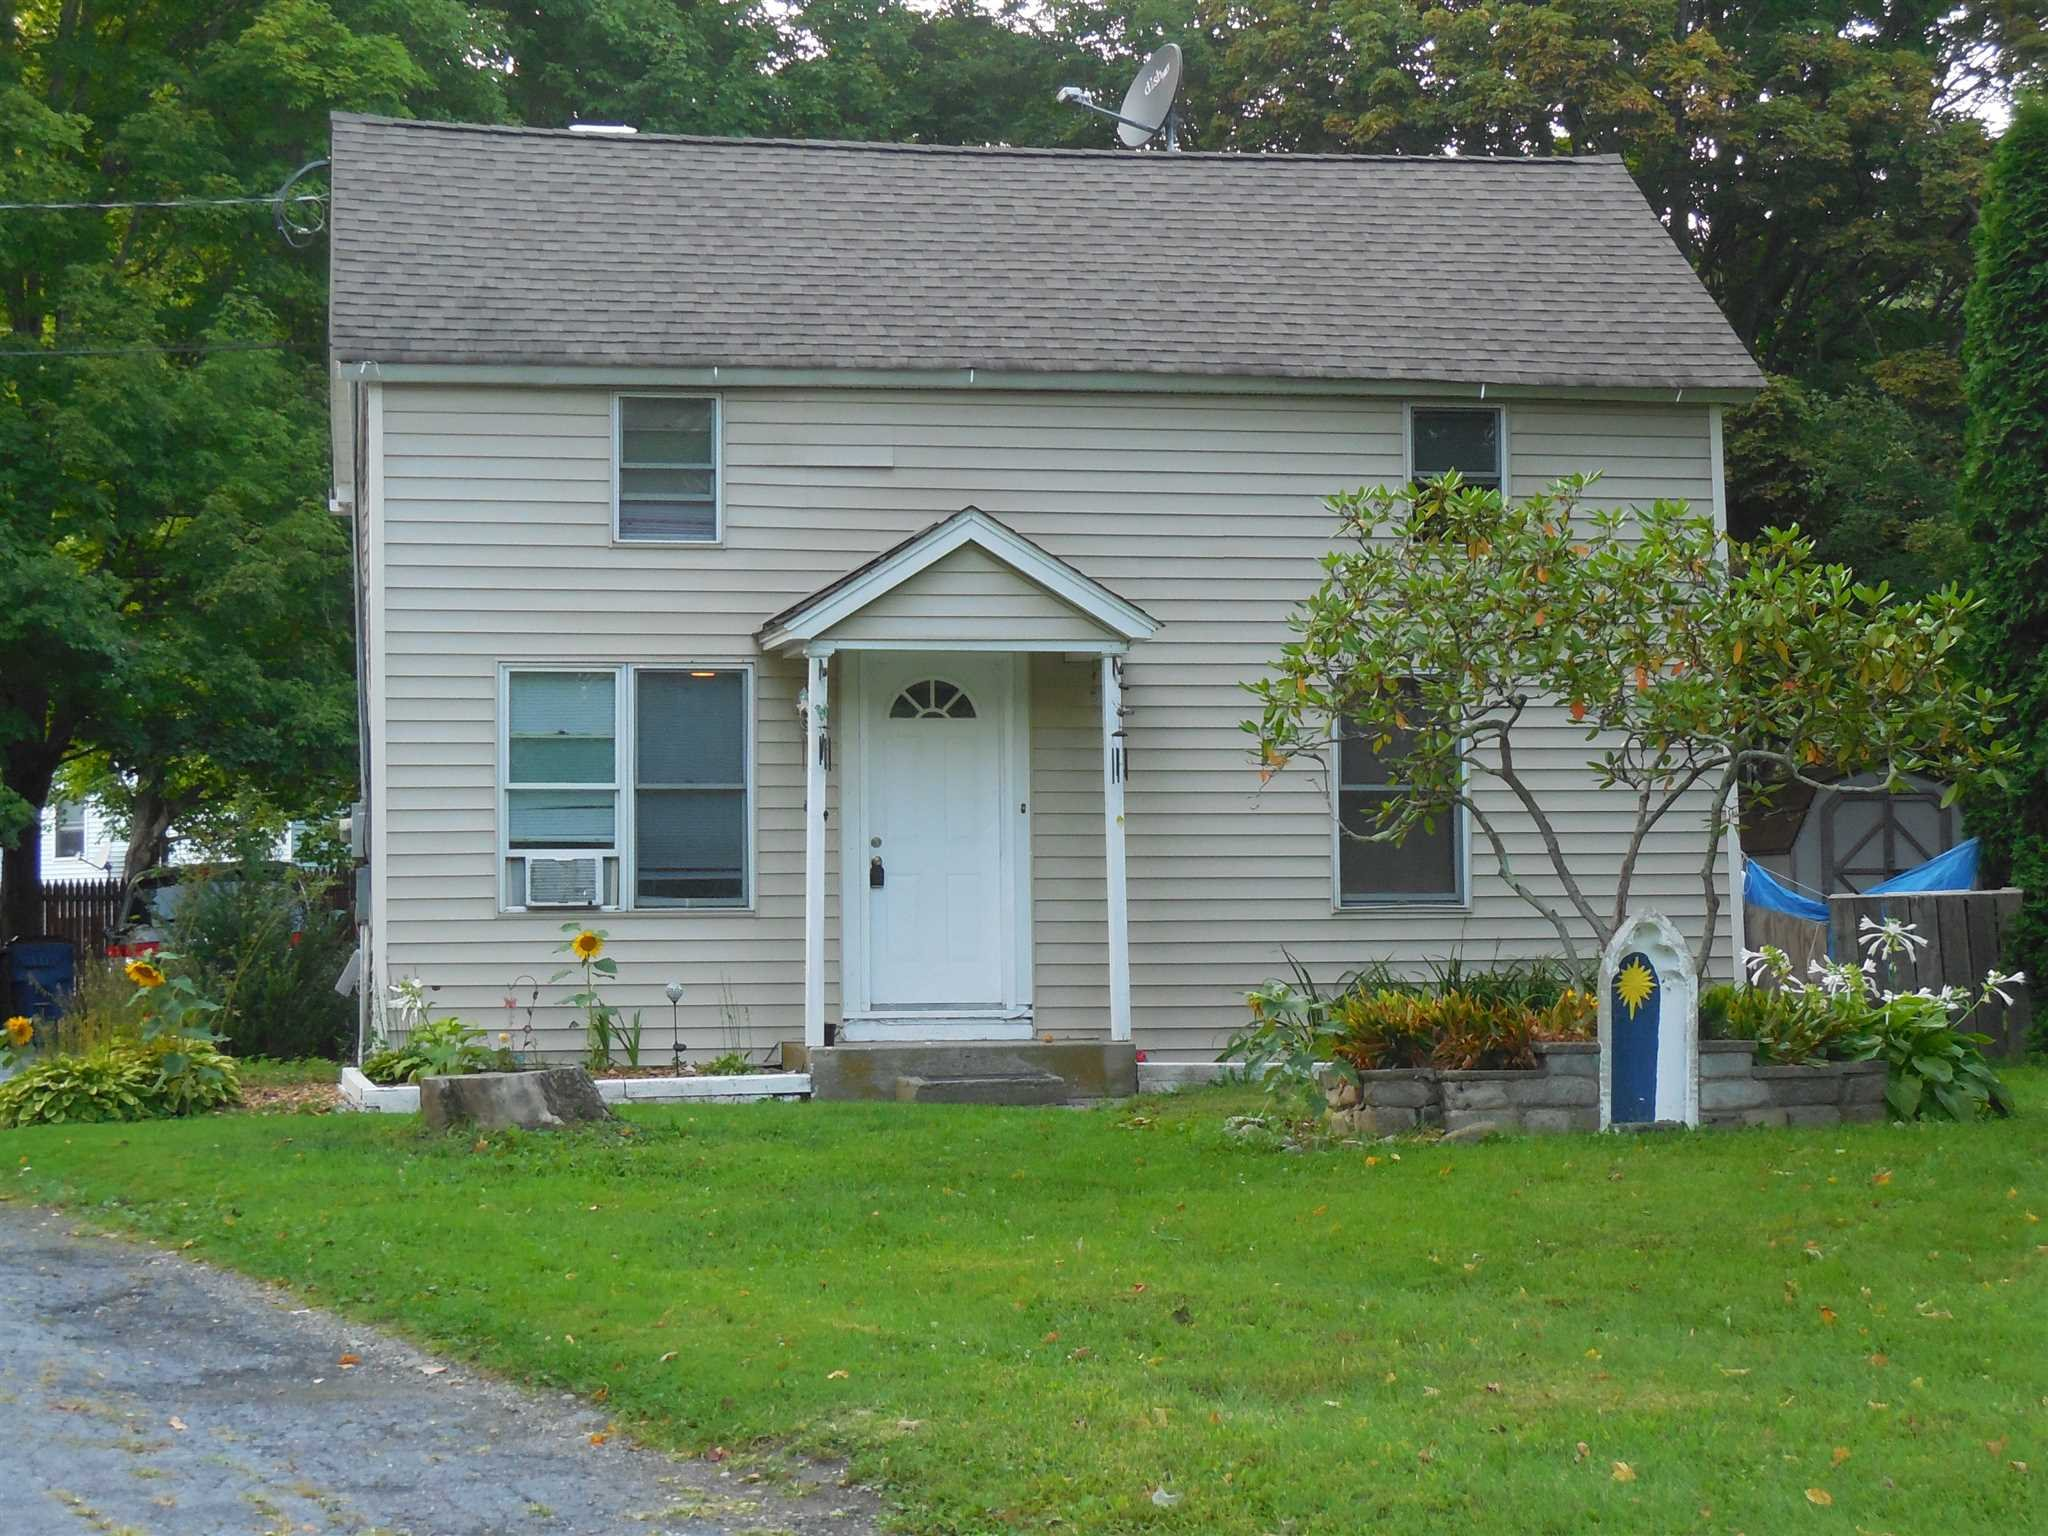 Single Family Home for Sale at 3691 ROUTE 22 3691 ROUTE 22 Amenia, New York 12592 United States